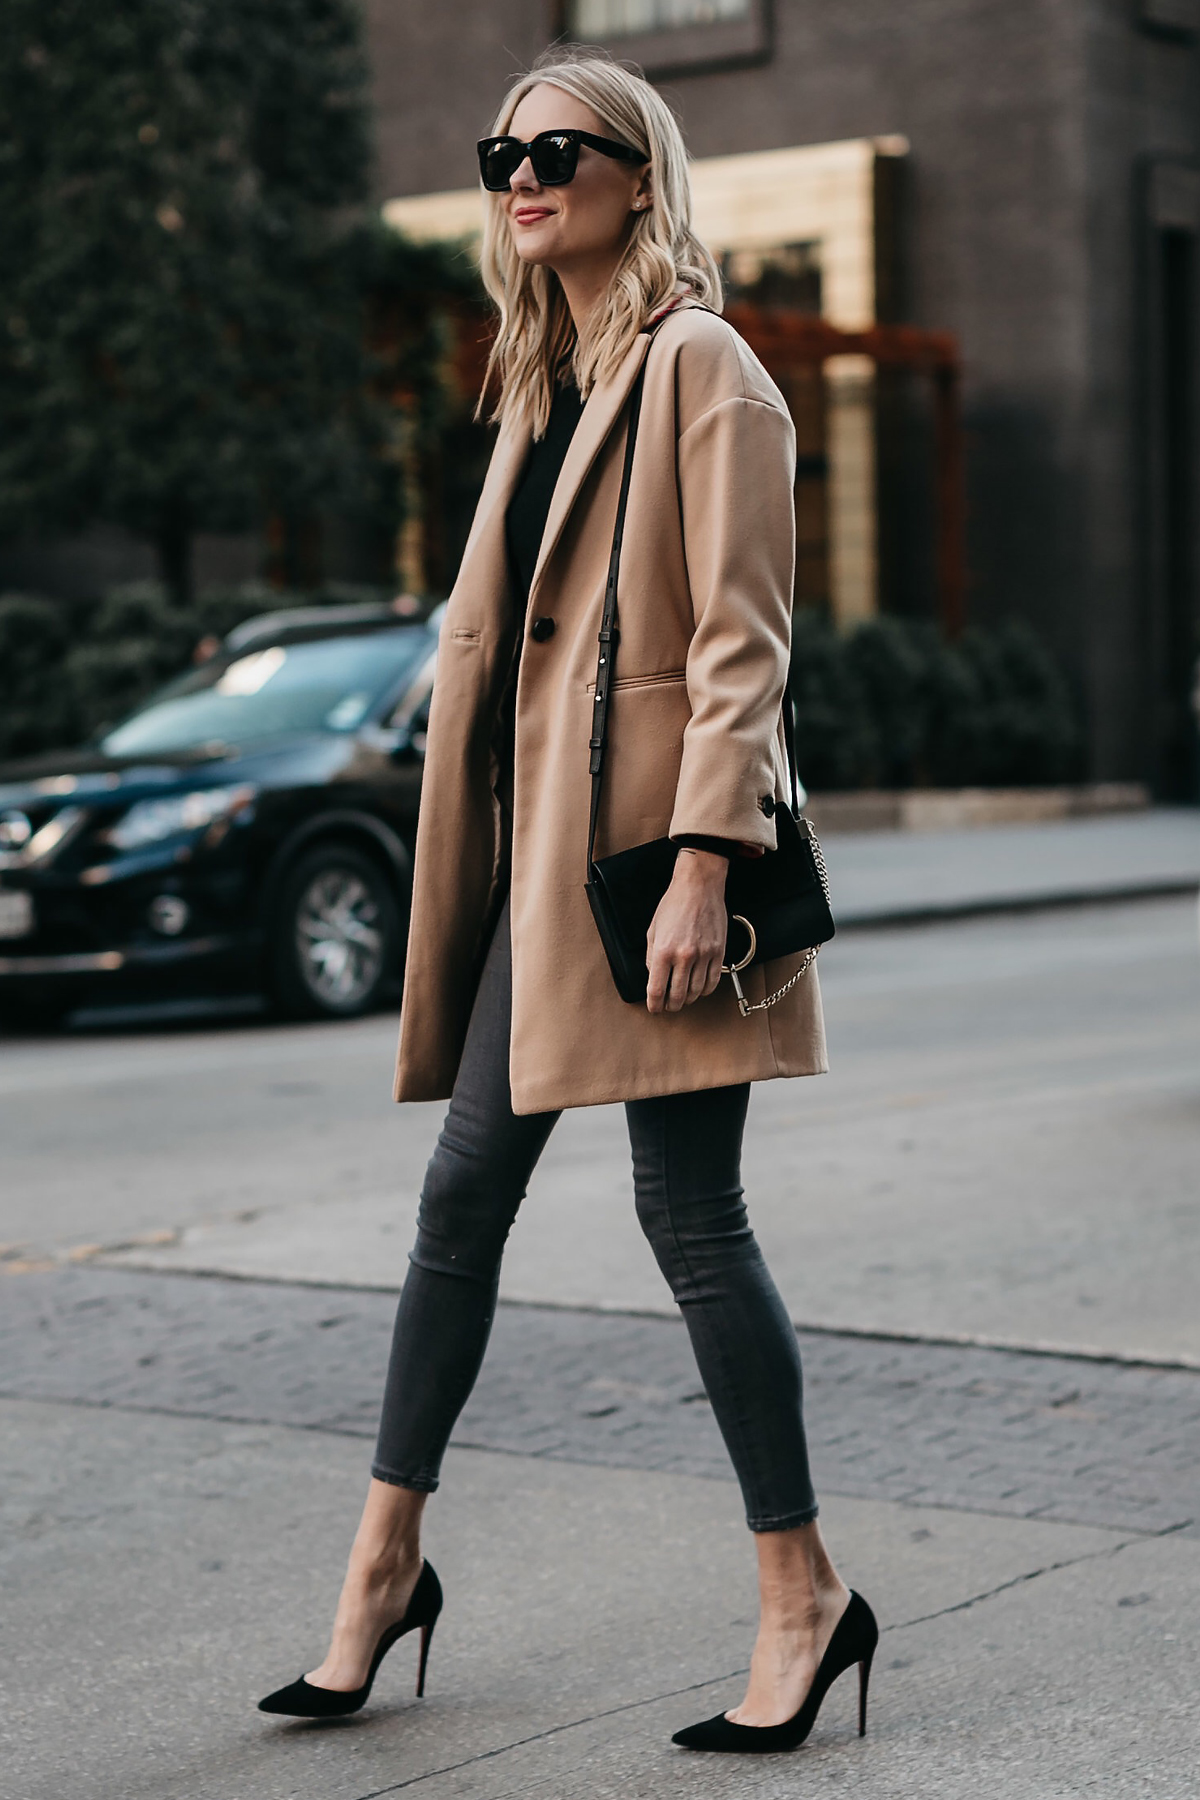 Blonde Woman Wearing Topshop Camel Coat Grey Skinny Jeans Christian Louboutin Black Pumps Fashion Jackson Dallas Blogger Fashion Blogger Street Style